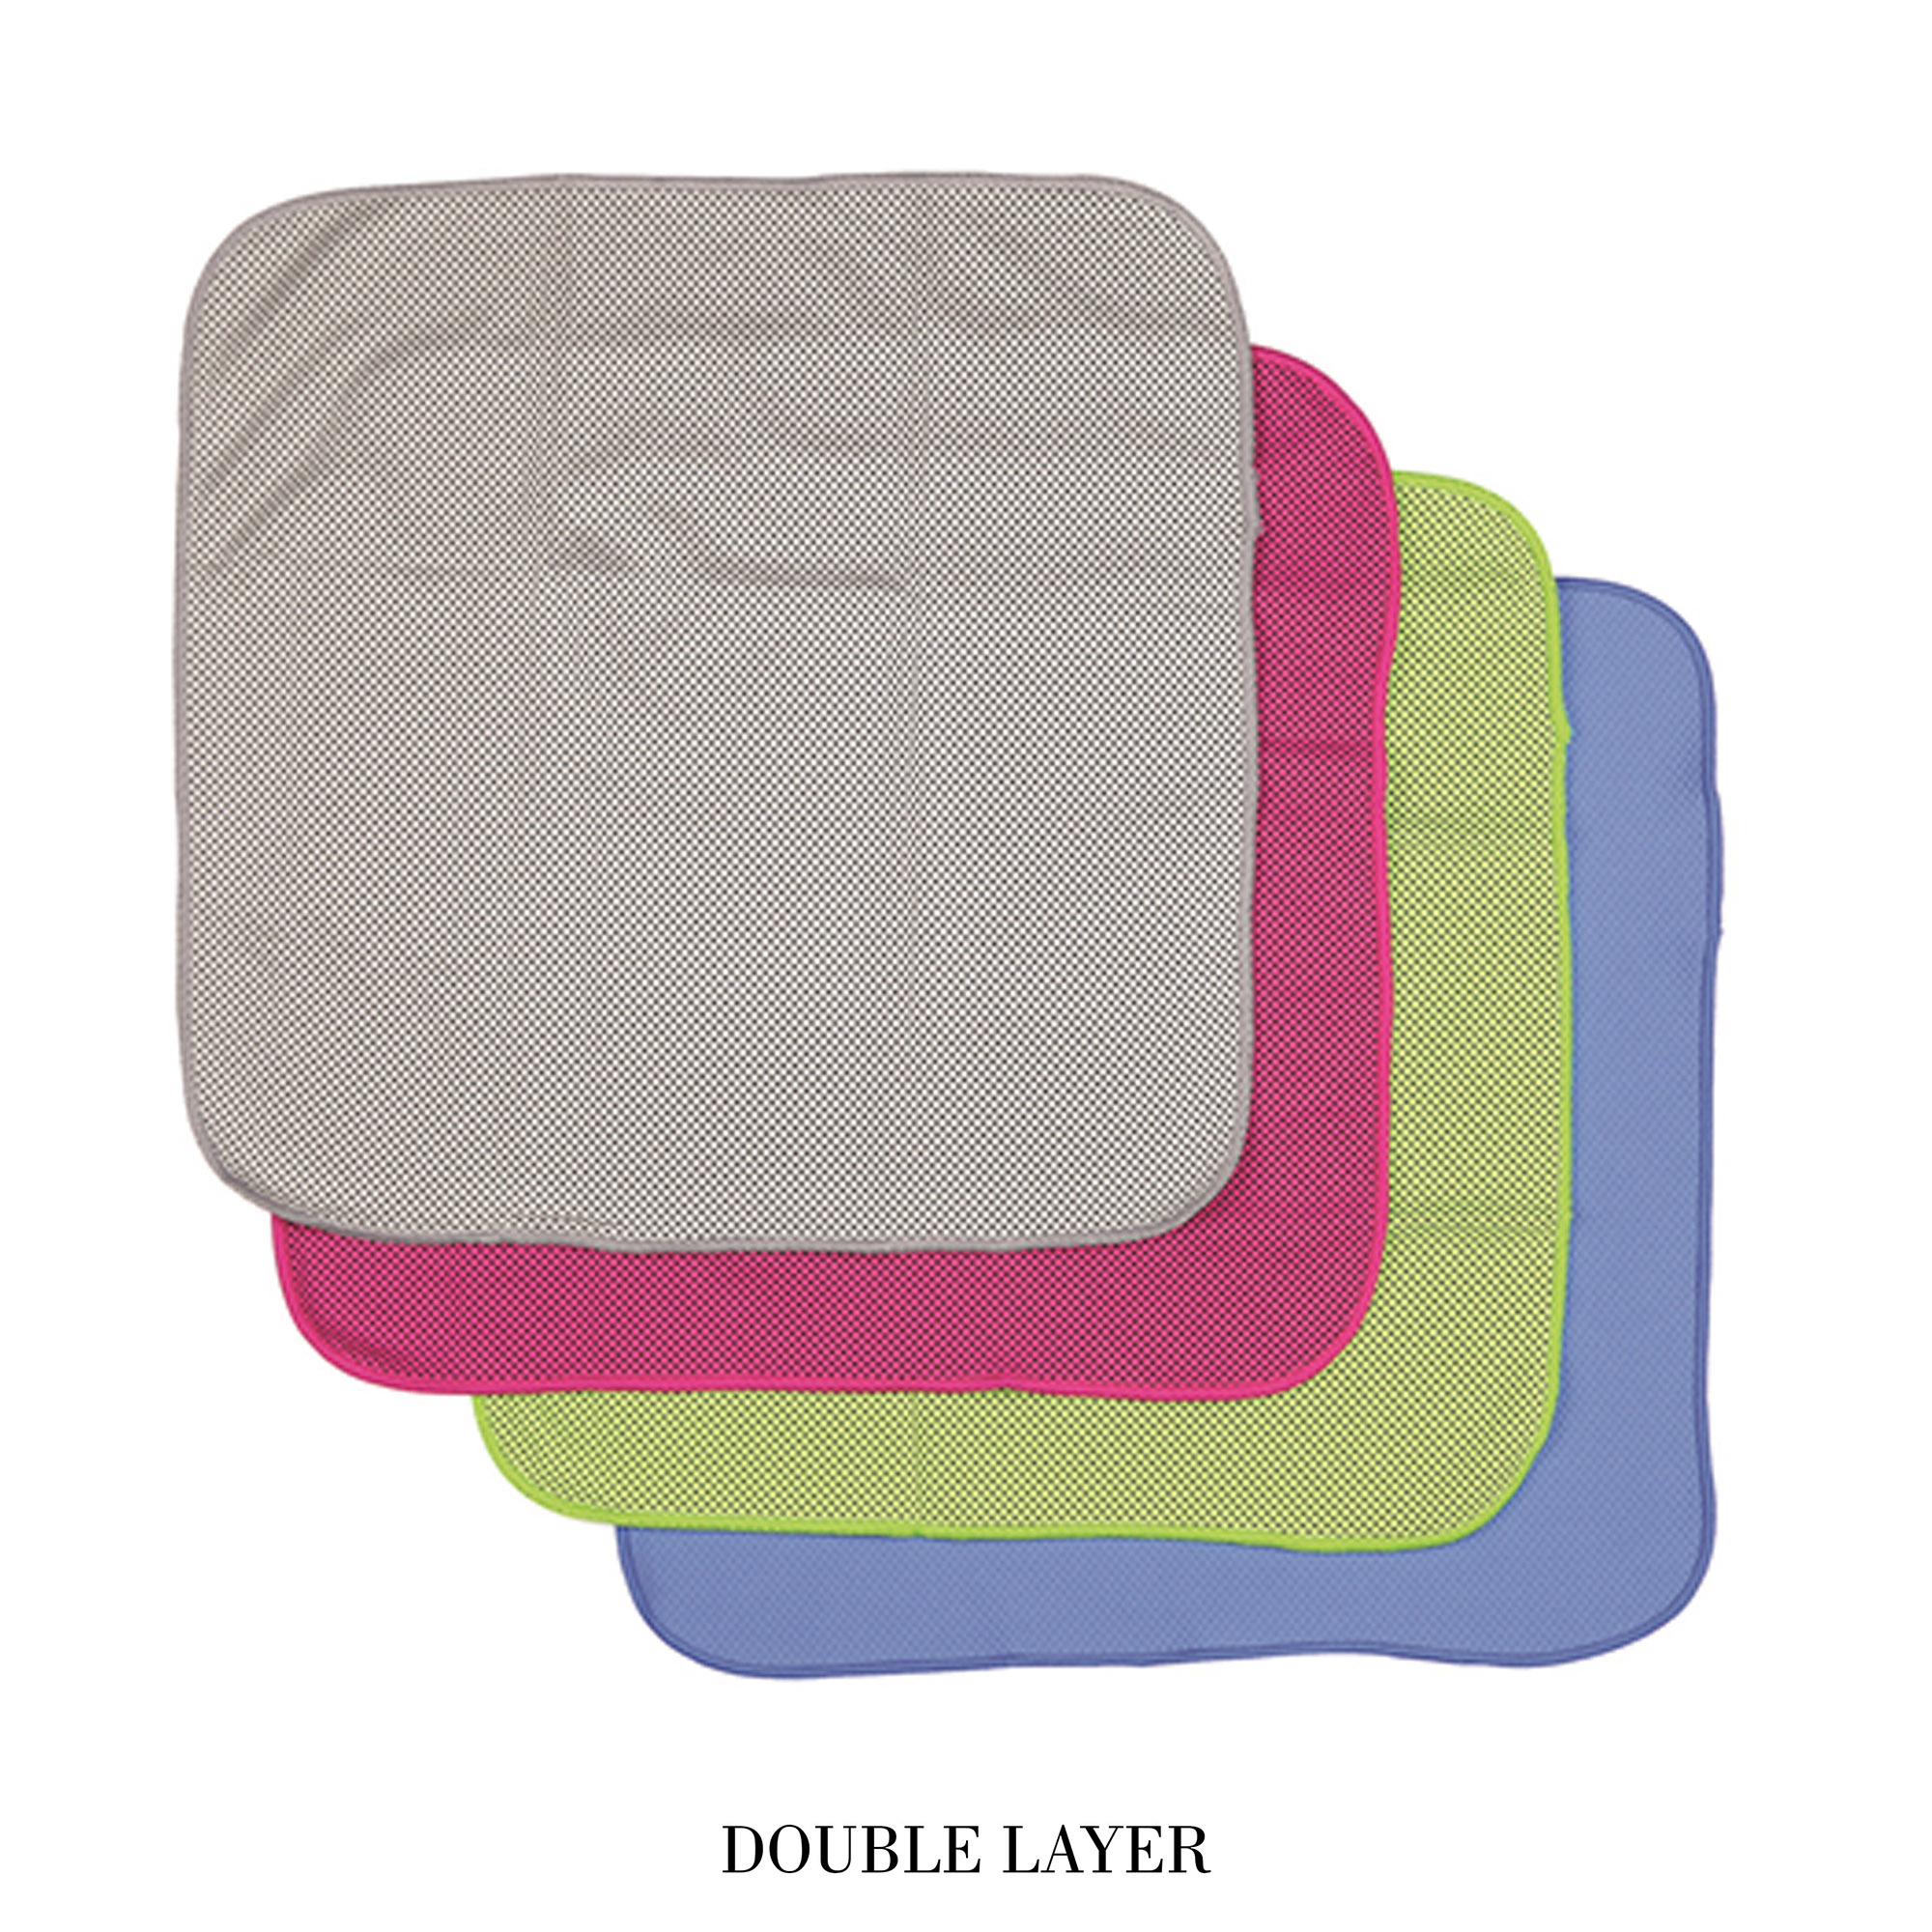 COOLING FACE CLOTH DL - 1 Colour Print, From $1.95